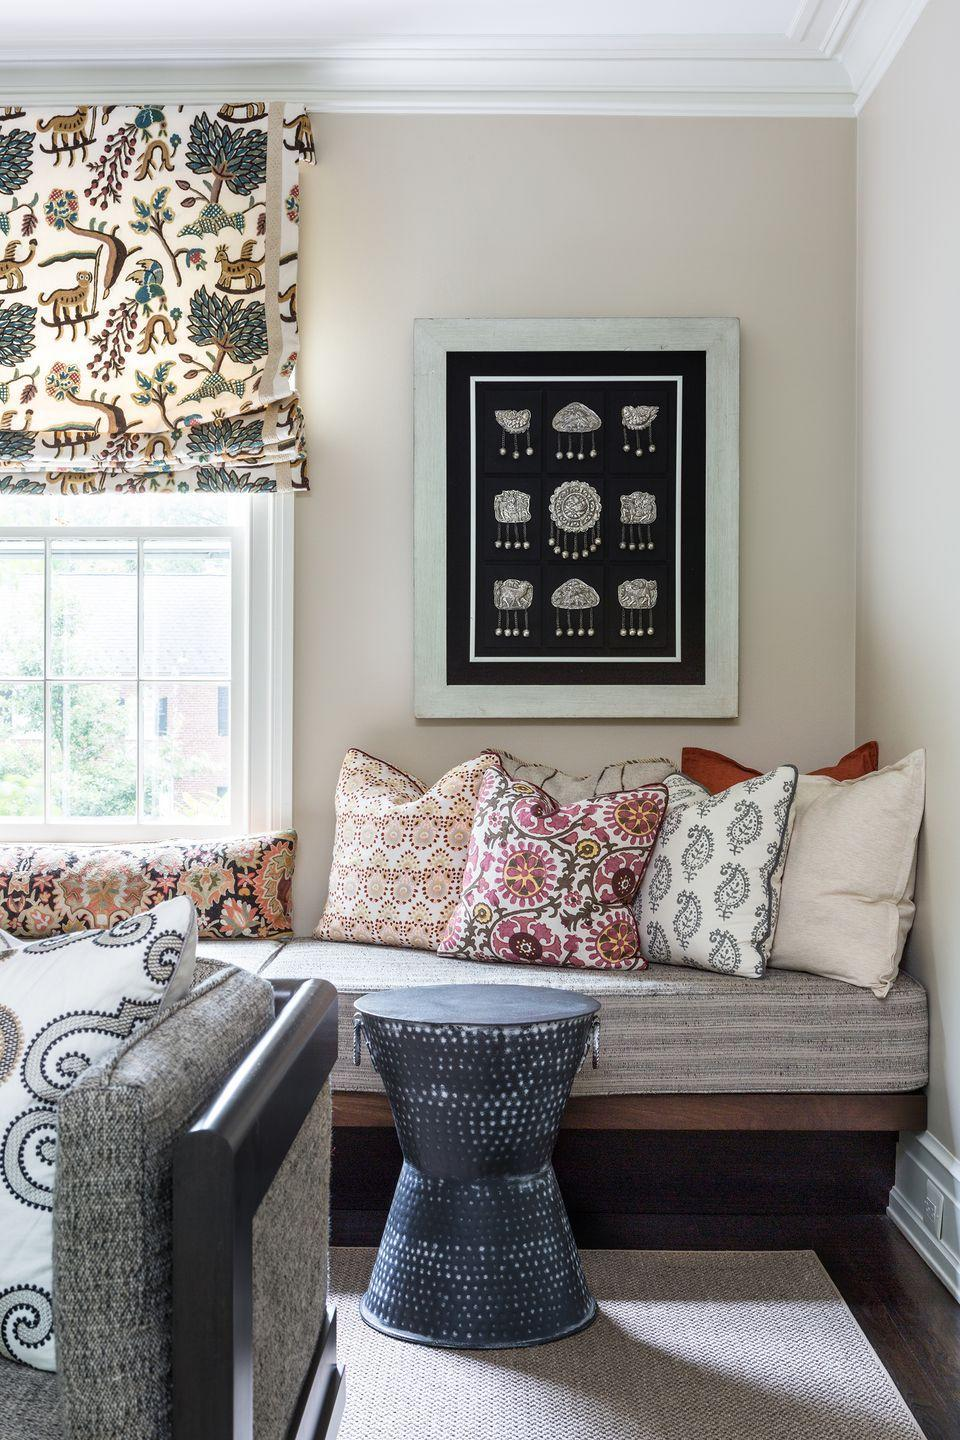 """<p>Layering accent pillows is a go-to fall decor trick for designer <a href=""""https://meyerinteriors.com/"""" rel=""""nofollow noopener"""" target=""""_blank"""" data-ylk=""""slk:Marika Meyer"""" class=""""link rapid-noclick-resp"""">Marika Meyer</a>, who is based in Washington, D.C. In this inviting living room, Marika paired a base of neutral throw pillows with patterned styles in warm terracotta hues. The pillows, which can be updated from season to season, also complement the fall-appropriate Roman shades.<br></p>"""